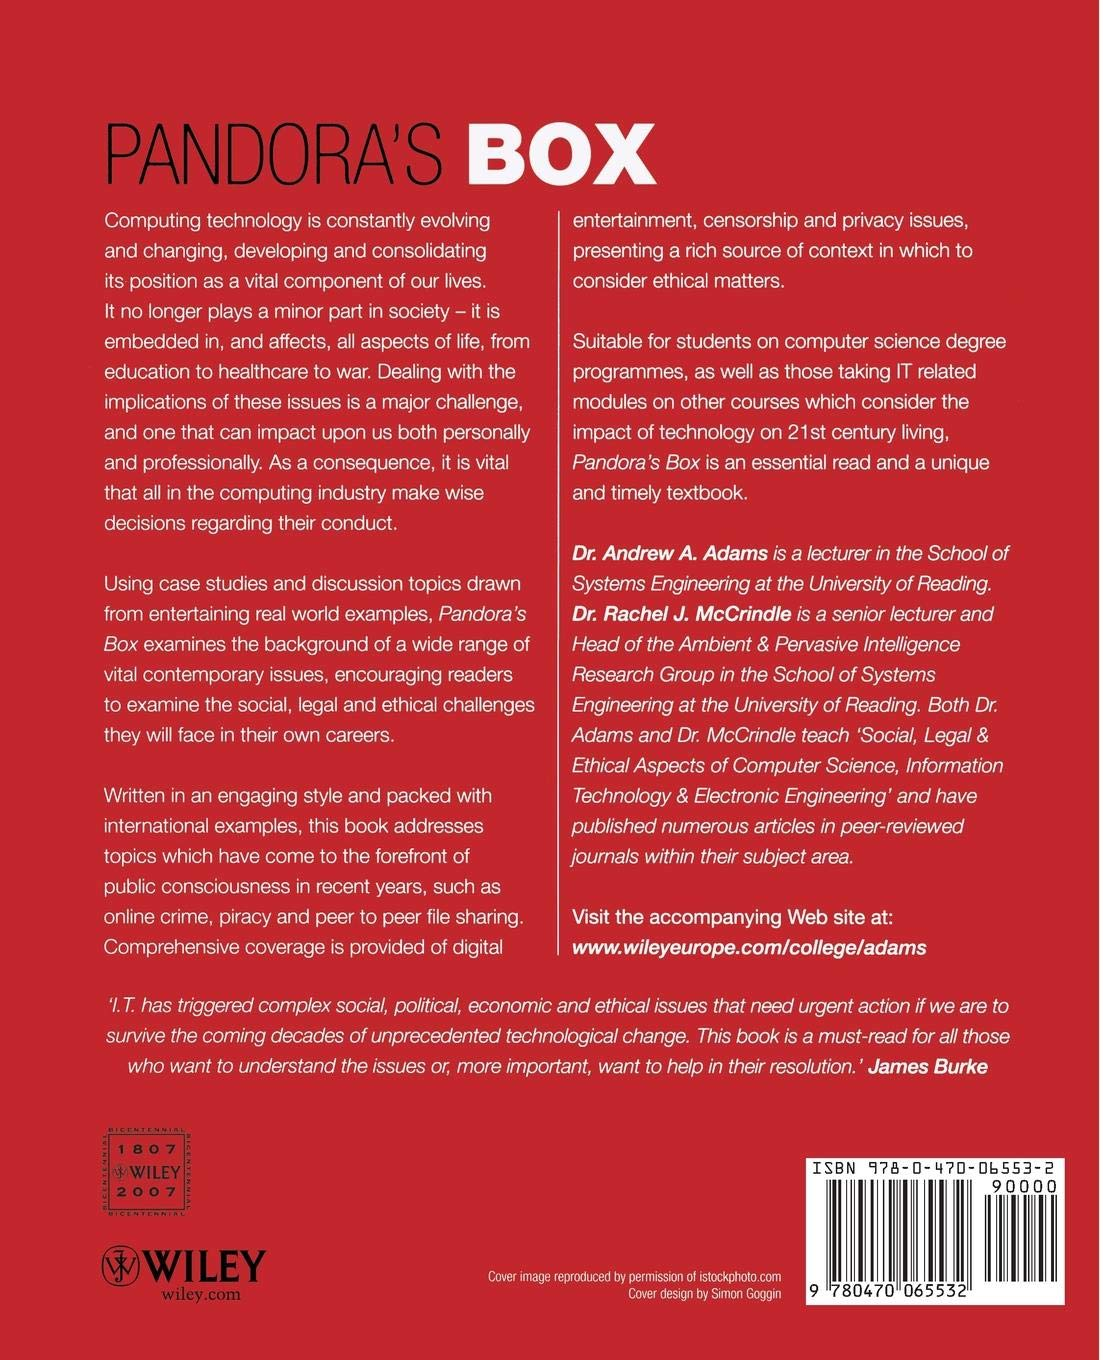 Pandora's Box: Social and Professional Issues of the